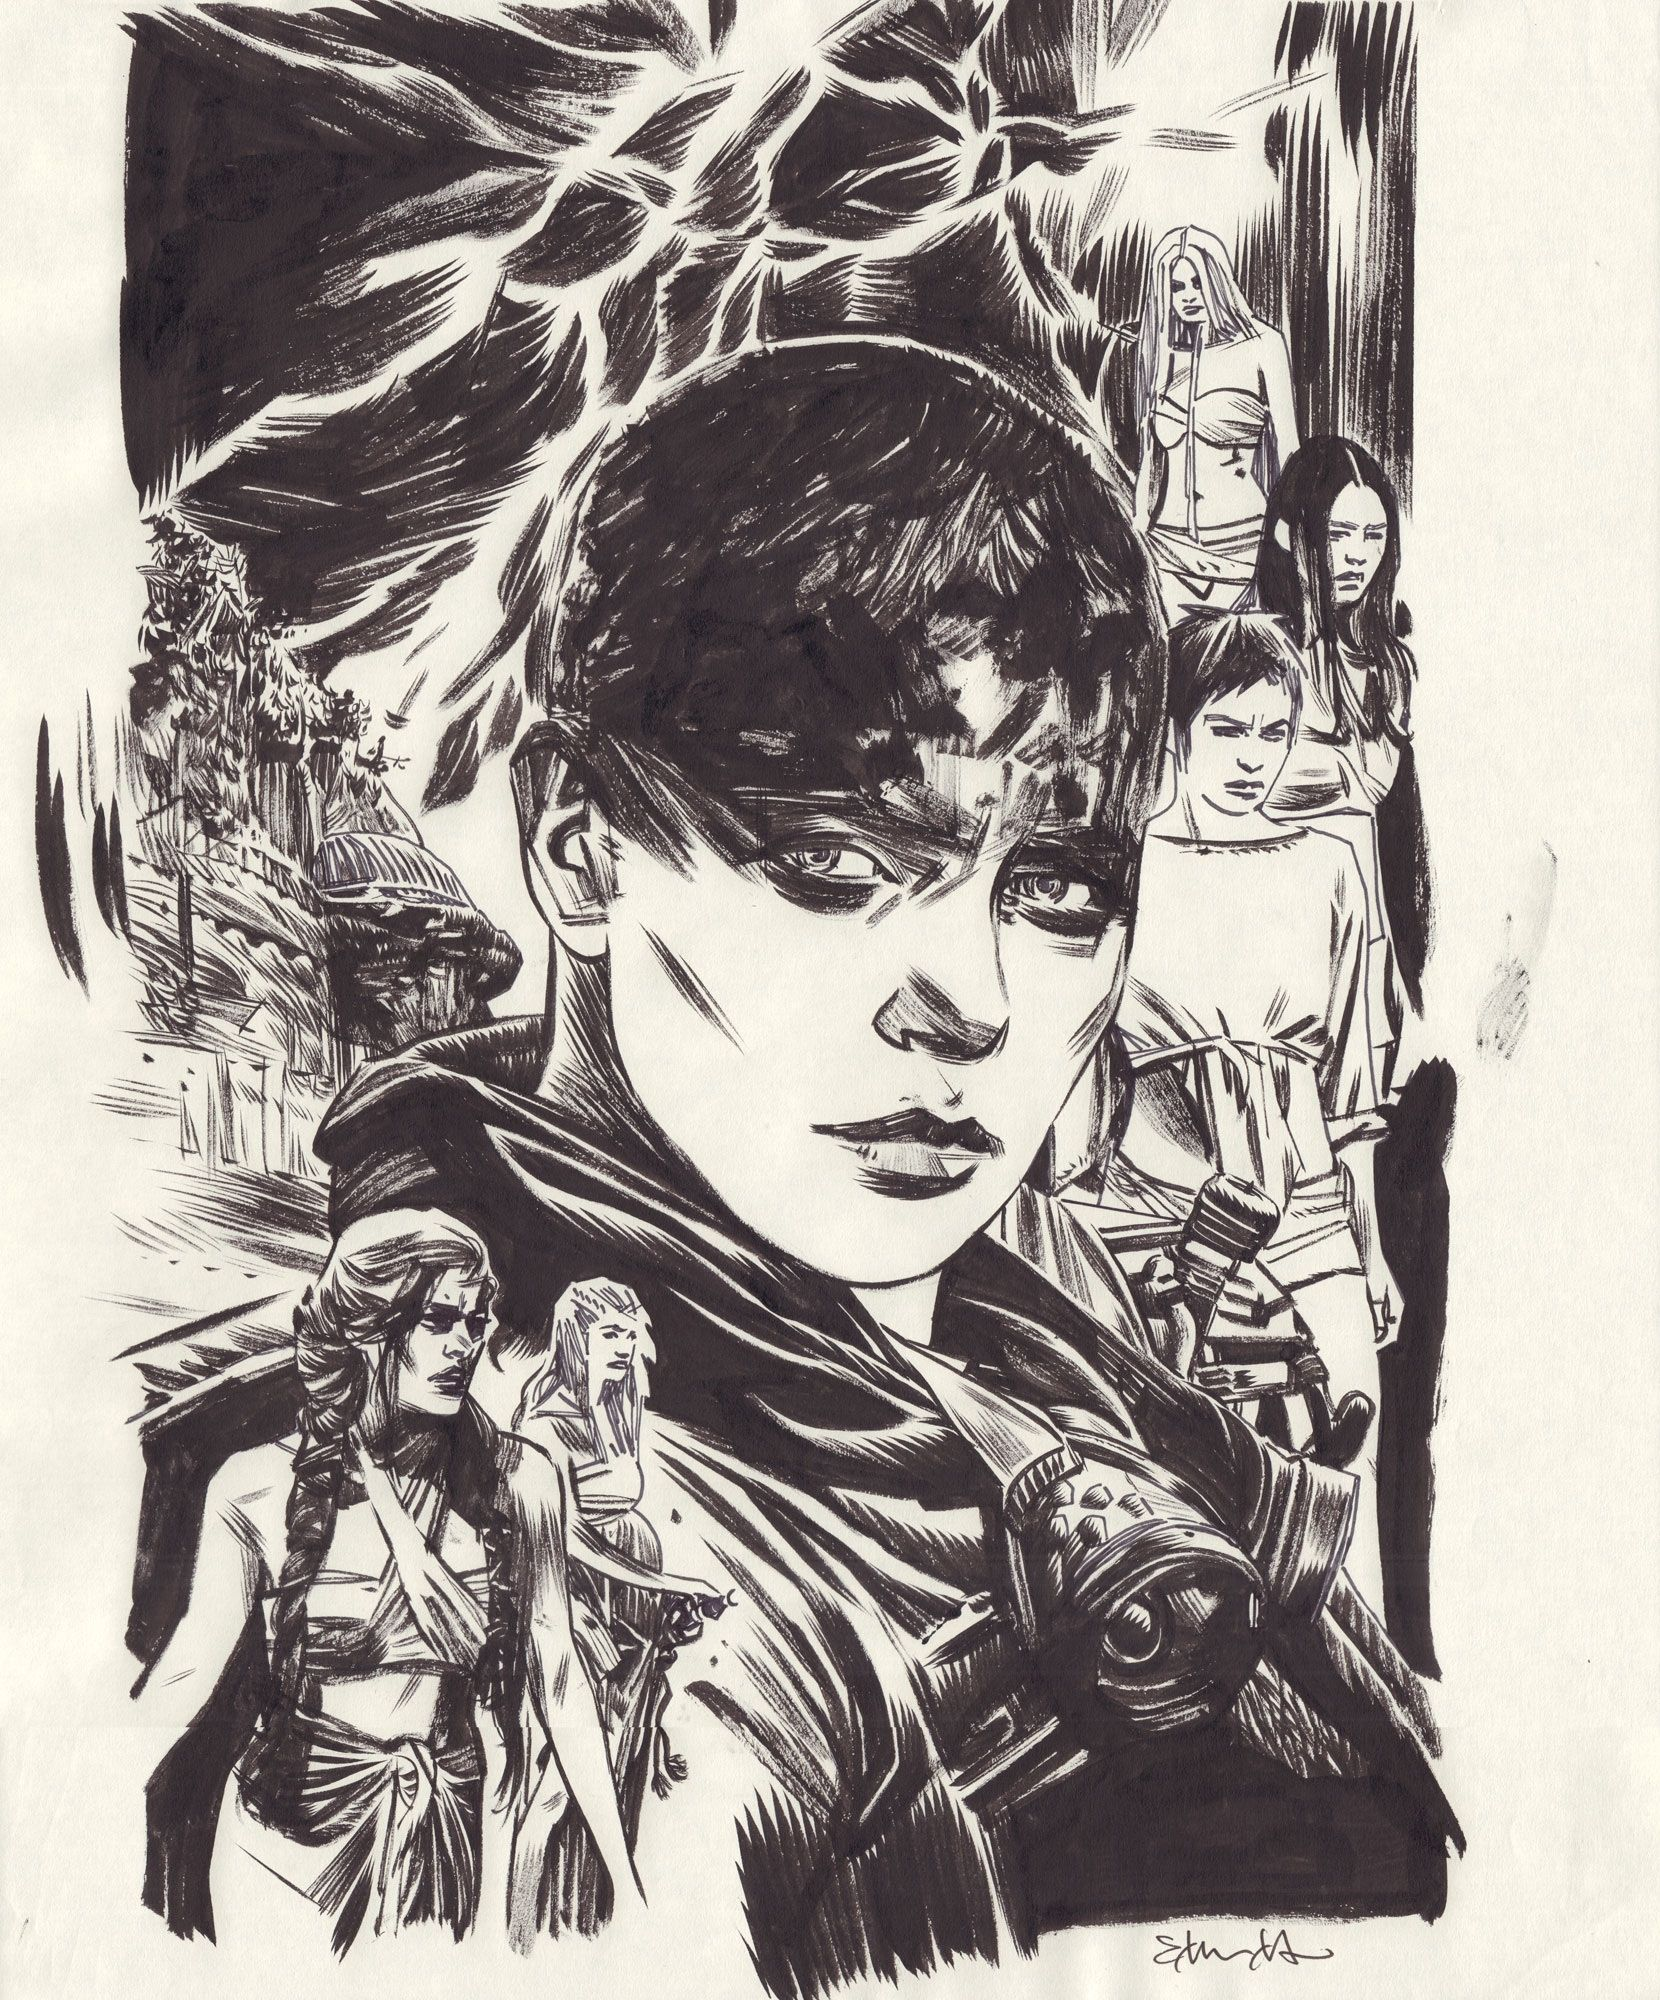 Mad Max: Fury Road: Furiosa #1 - okładka